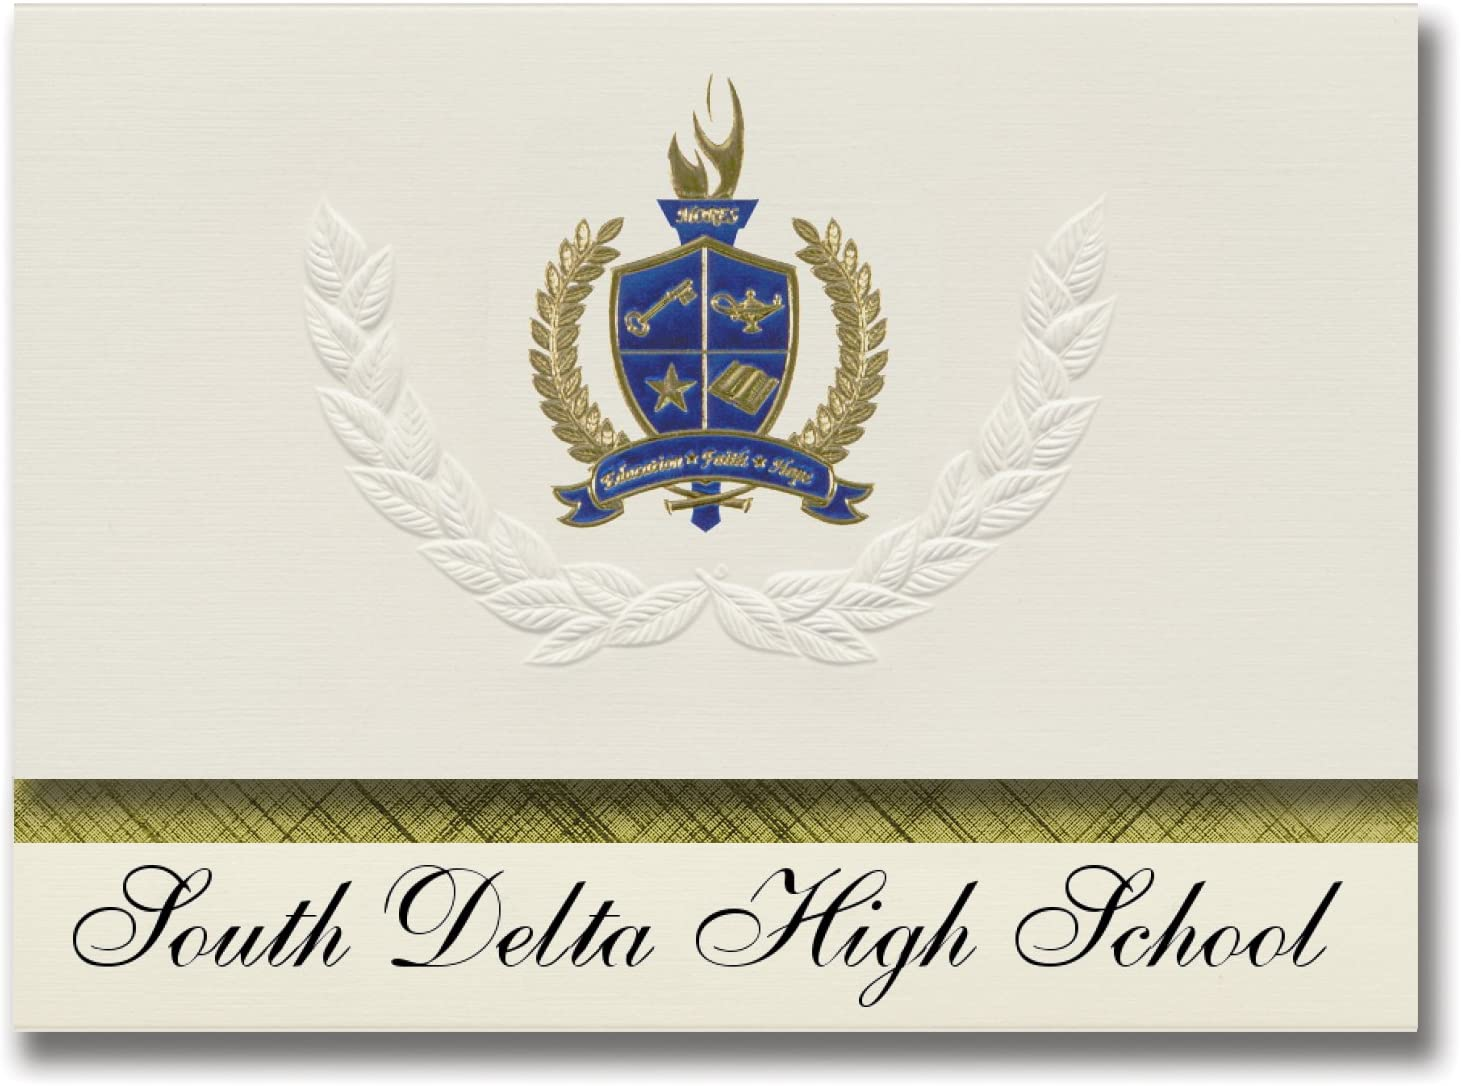 Signature Announcements South Delta High School (Rolling Fork, MS) Graduation Announcements, Presidential style, Basic package of 25 with Gold & Blue Metallic Foil seal